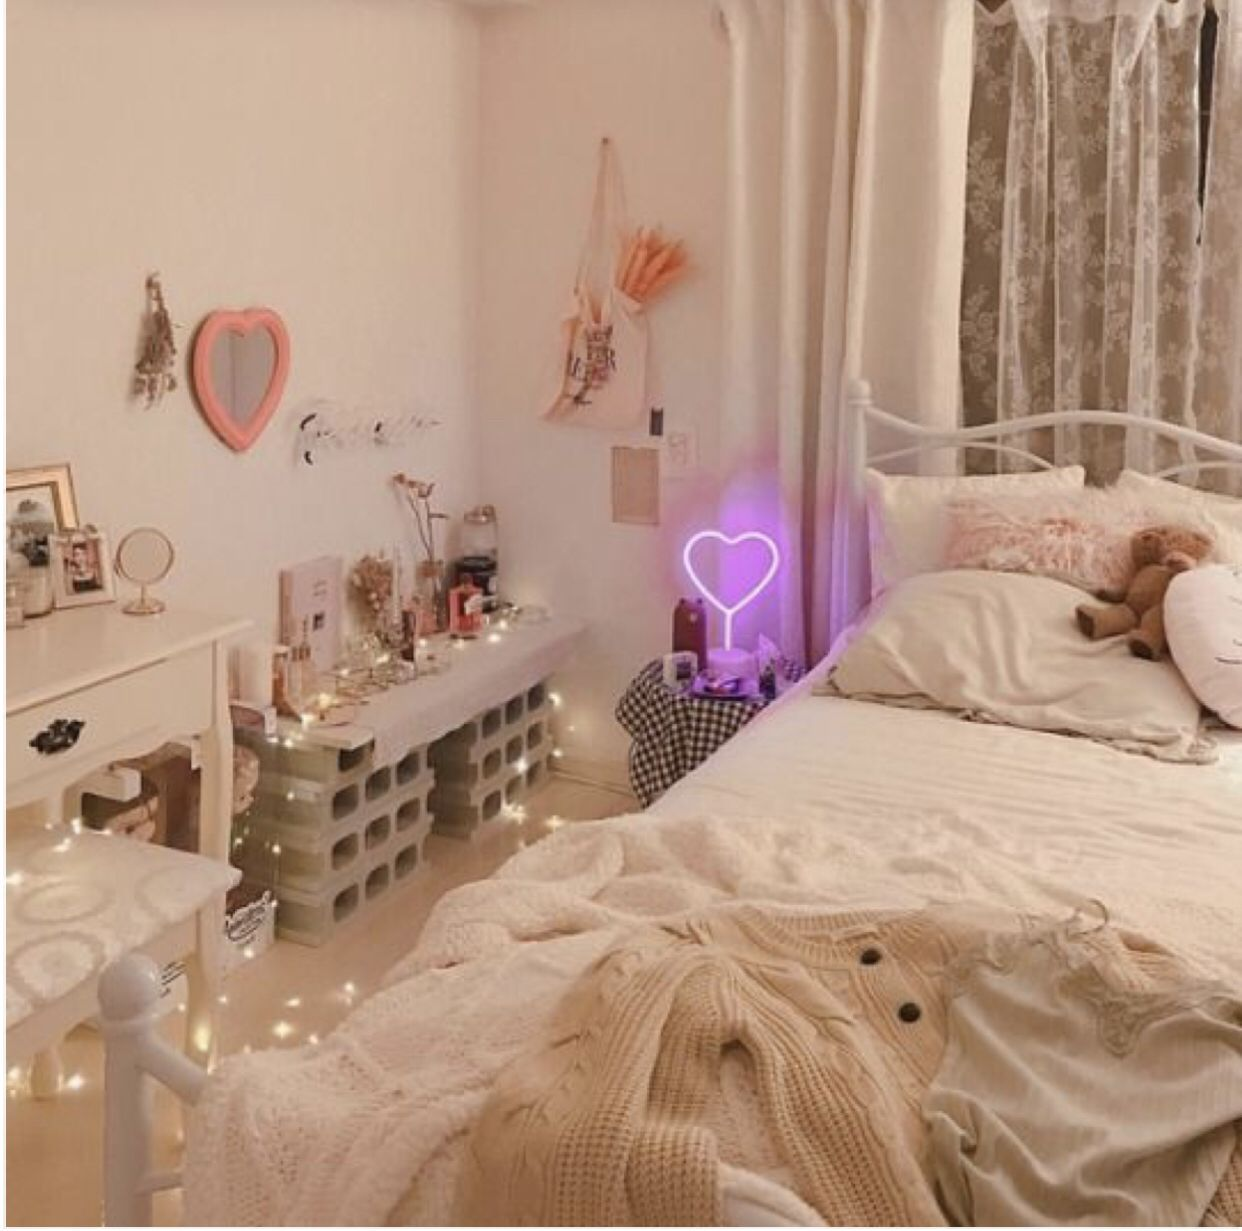 Pin by Hi Baby on ROOM IDEAS | Aesthetic bedroom, Pastel ...